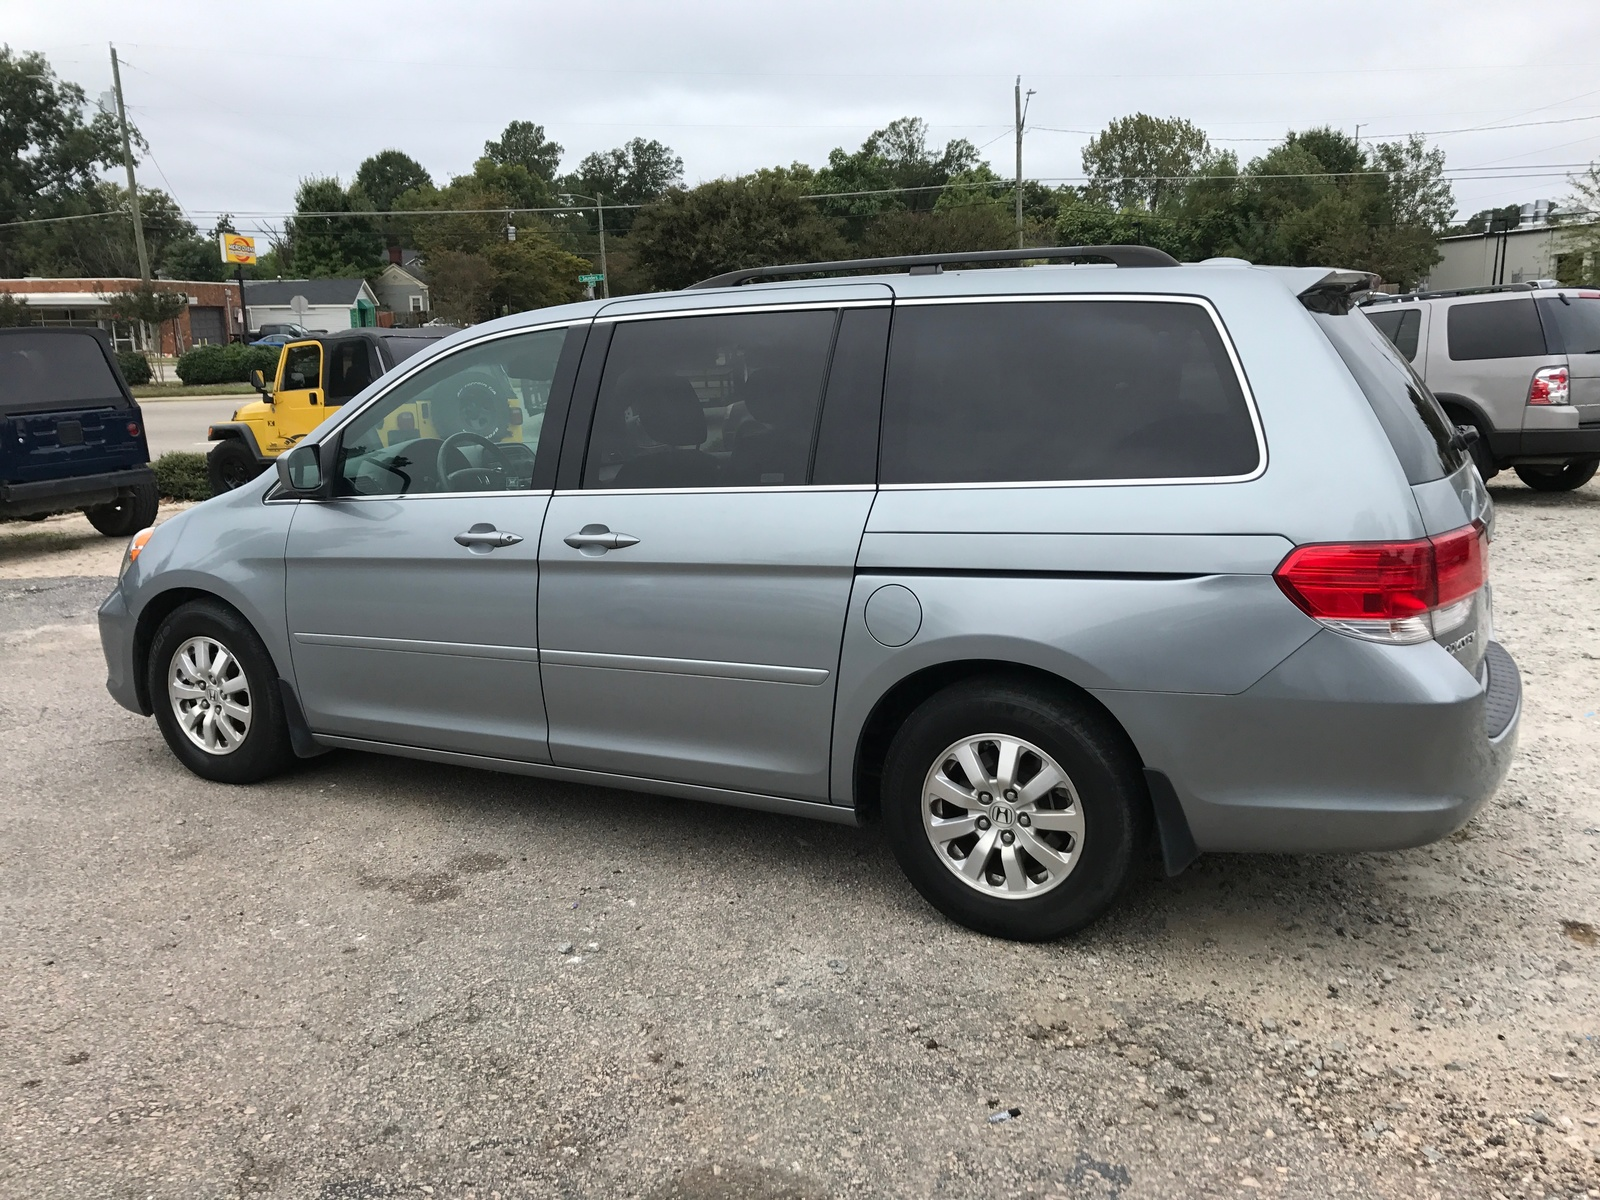 Used 2007 honda odyssey for sale pricing features autos post for Used honda odyssey nj